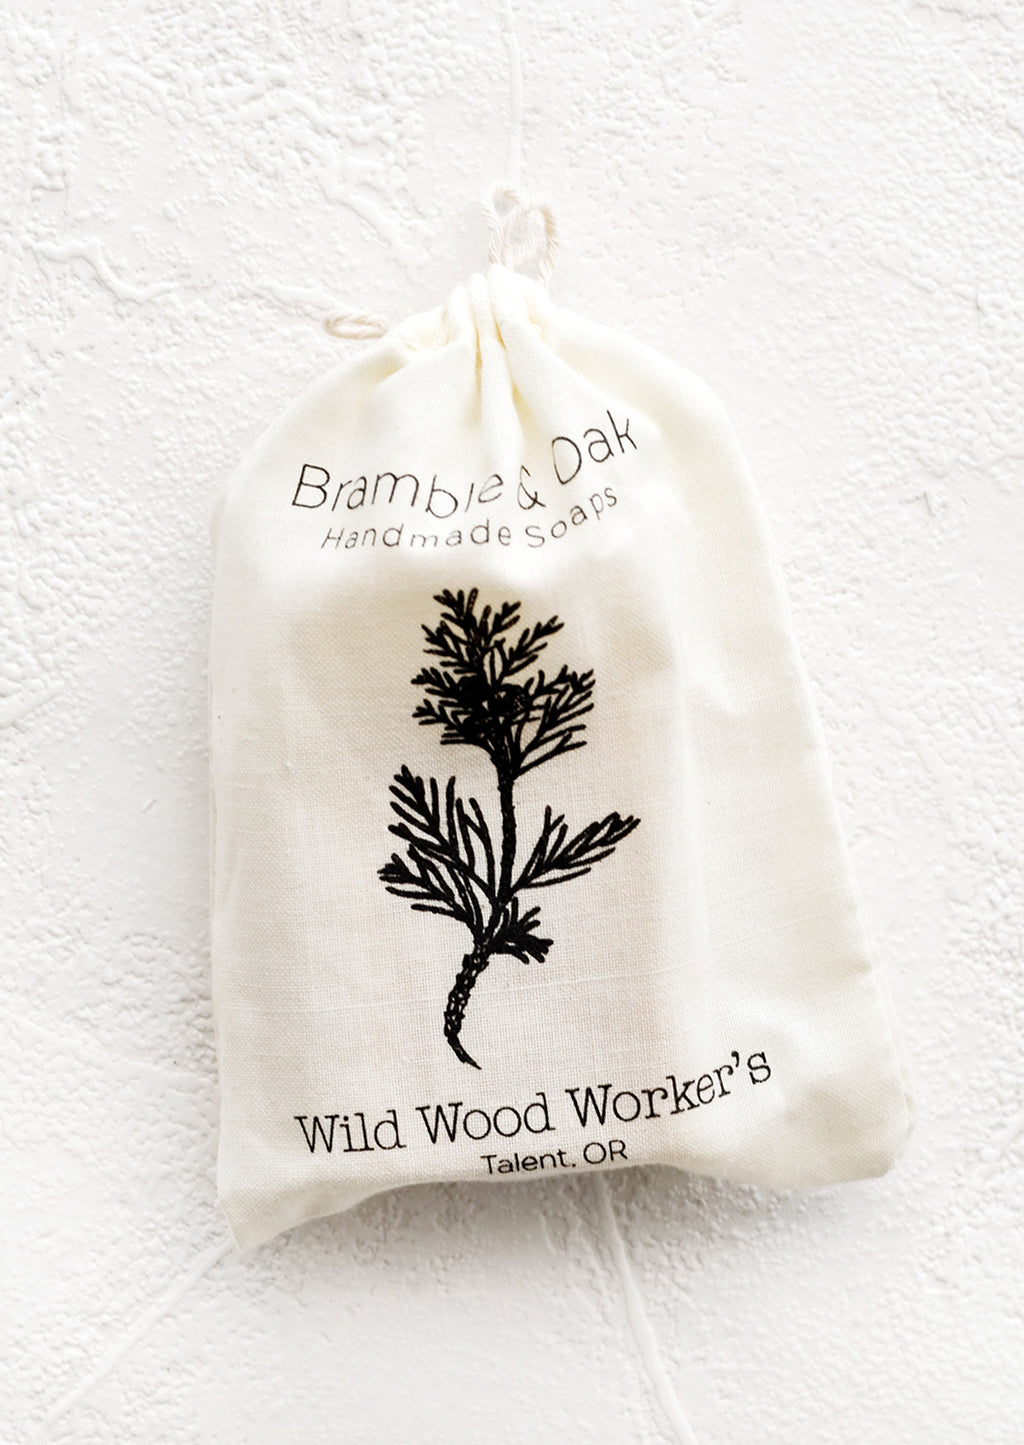 Wild Wood Worker's: A printed muslin bag with botanical imagery.